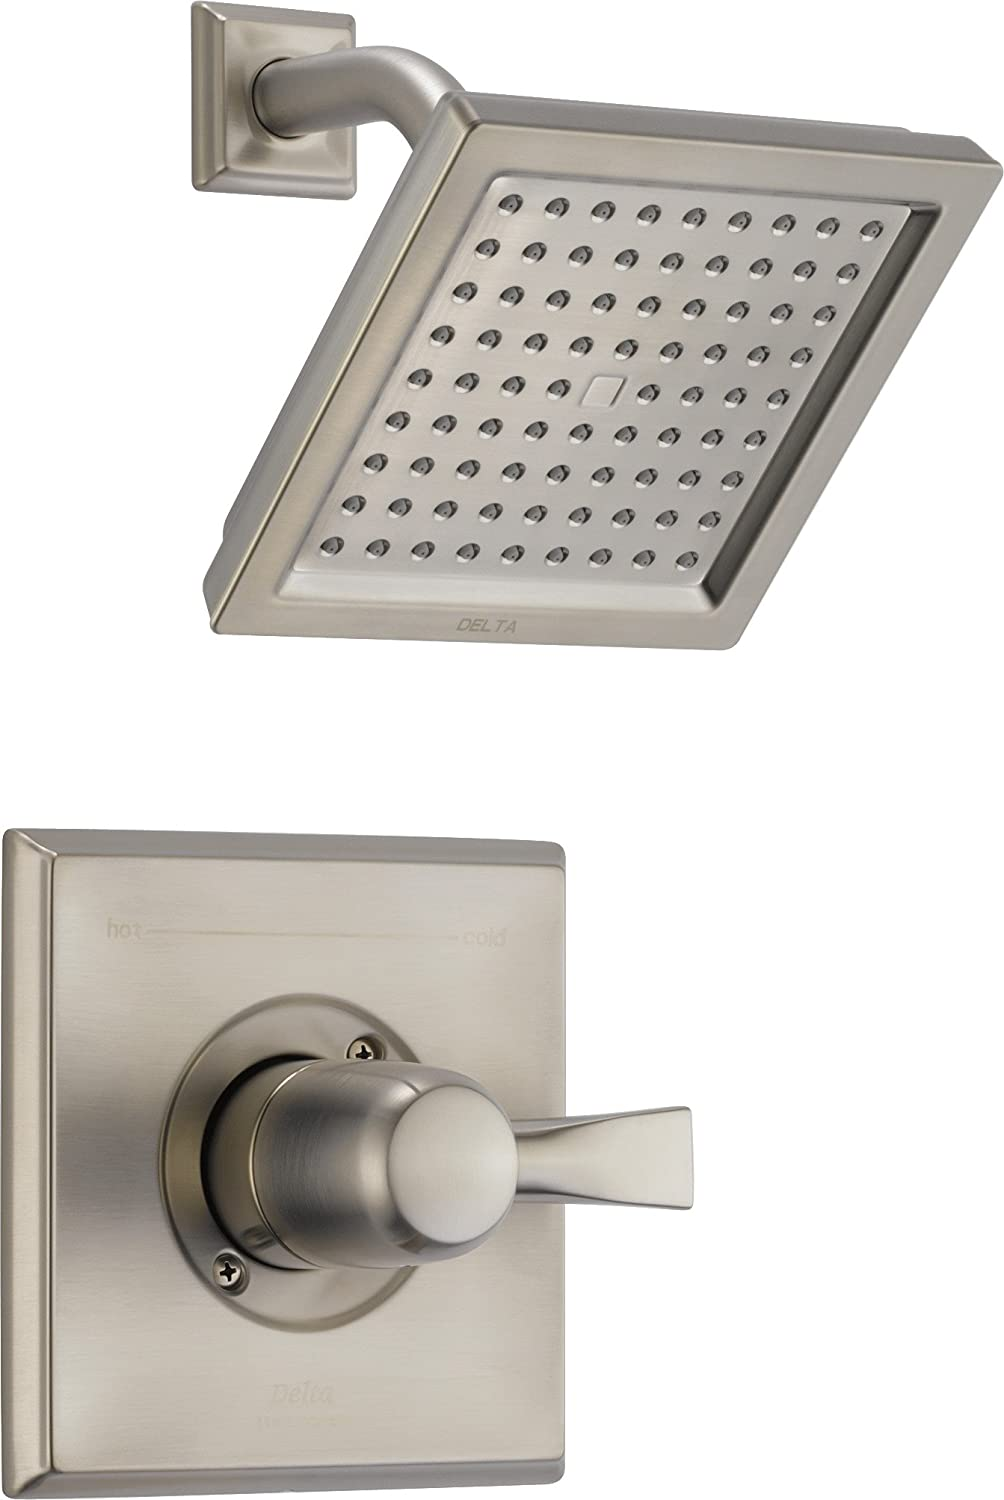 Delta Faucet Dryden 14 Series Single-Function Shower Trim Kit with Single-Spray Touch-Clean Shower Head, SpotShield Stainless T14251-SP (Valve Not Included)